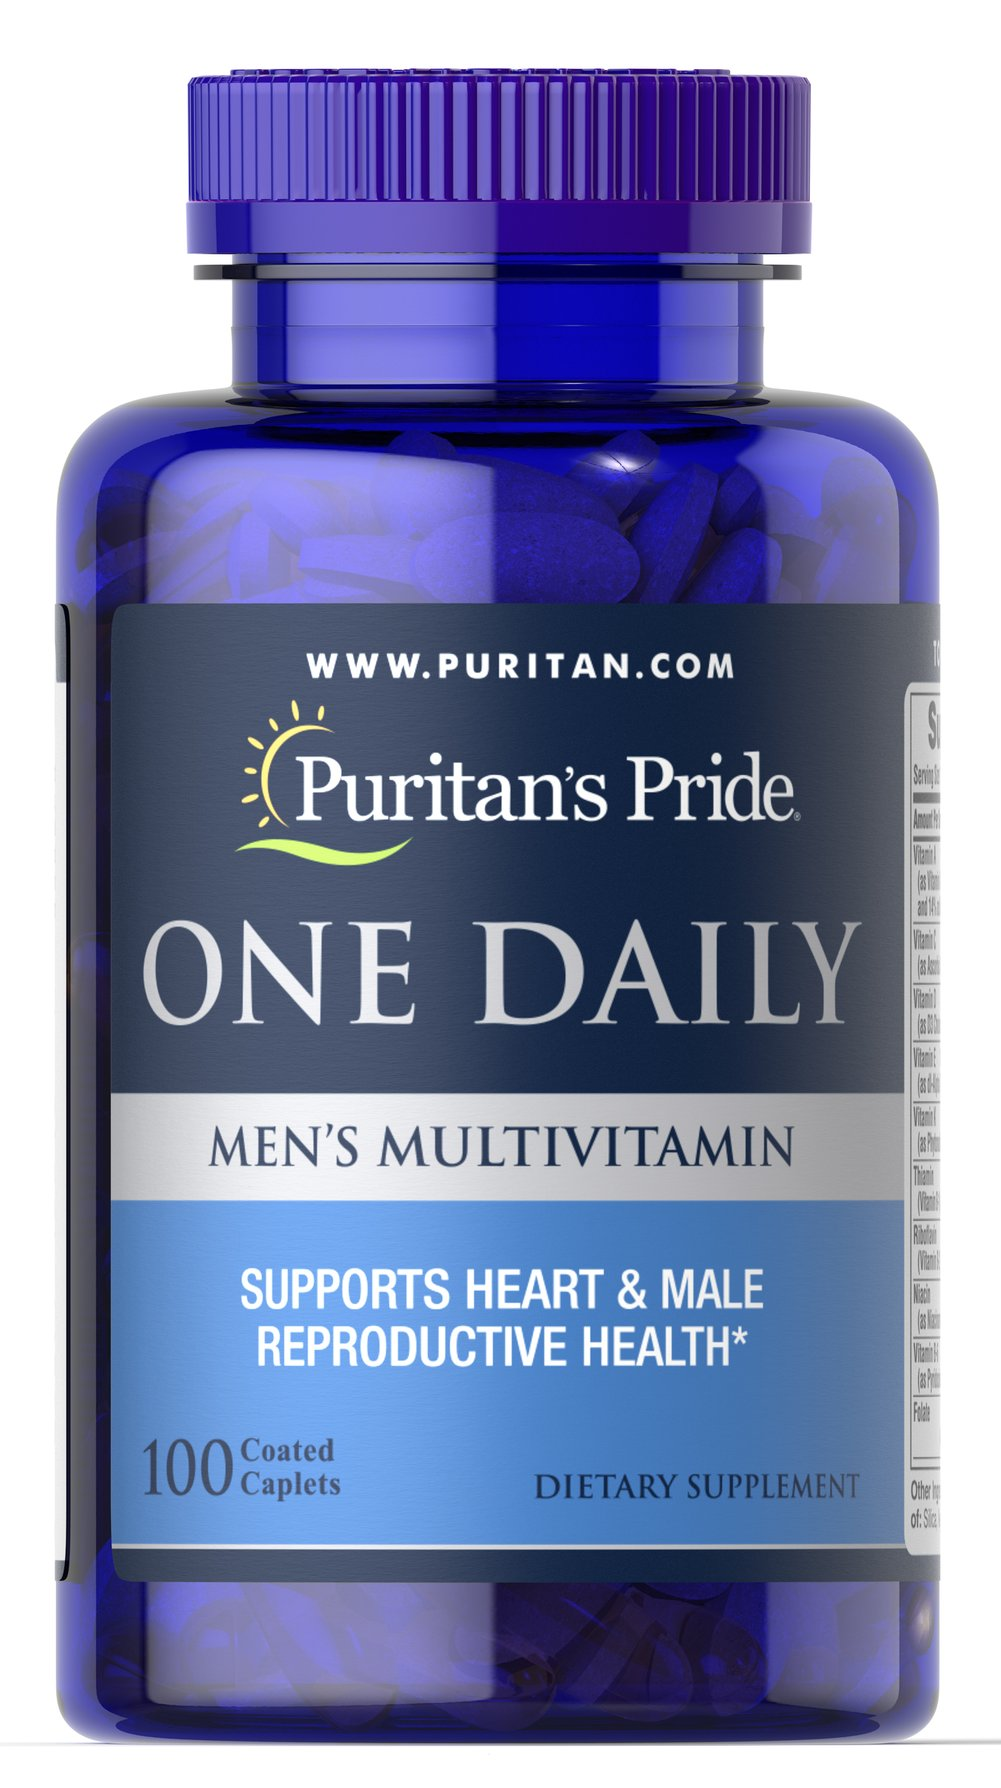 One Daily Men's Multivitamin with Lycopene <p>A Convenient multivitamins for the Man on the Go! Compare and Save!</p><p>Once-daily formula provides an array of vitamins and minerals</p><p>Includes 700 IU of Vitamin D to promote bone and immune system health, and 100% of the Daily Value of Zinc to aid with energy metabolism and male reproductive health**</p><p>Provides 300 mcg of Lycopene, a major carotenoid found in healthy prostate glands</p>